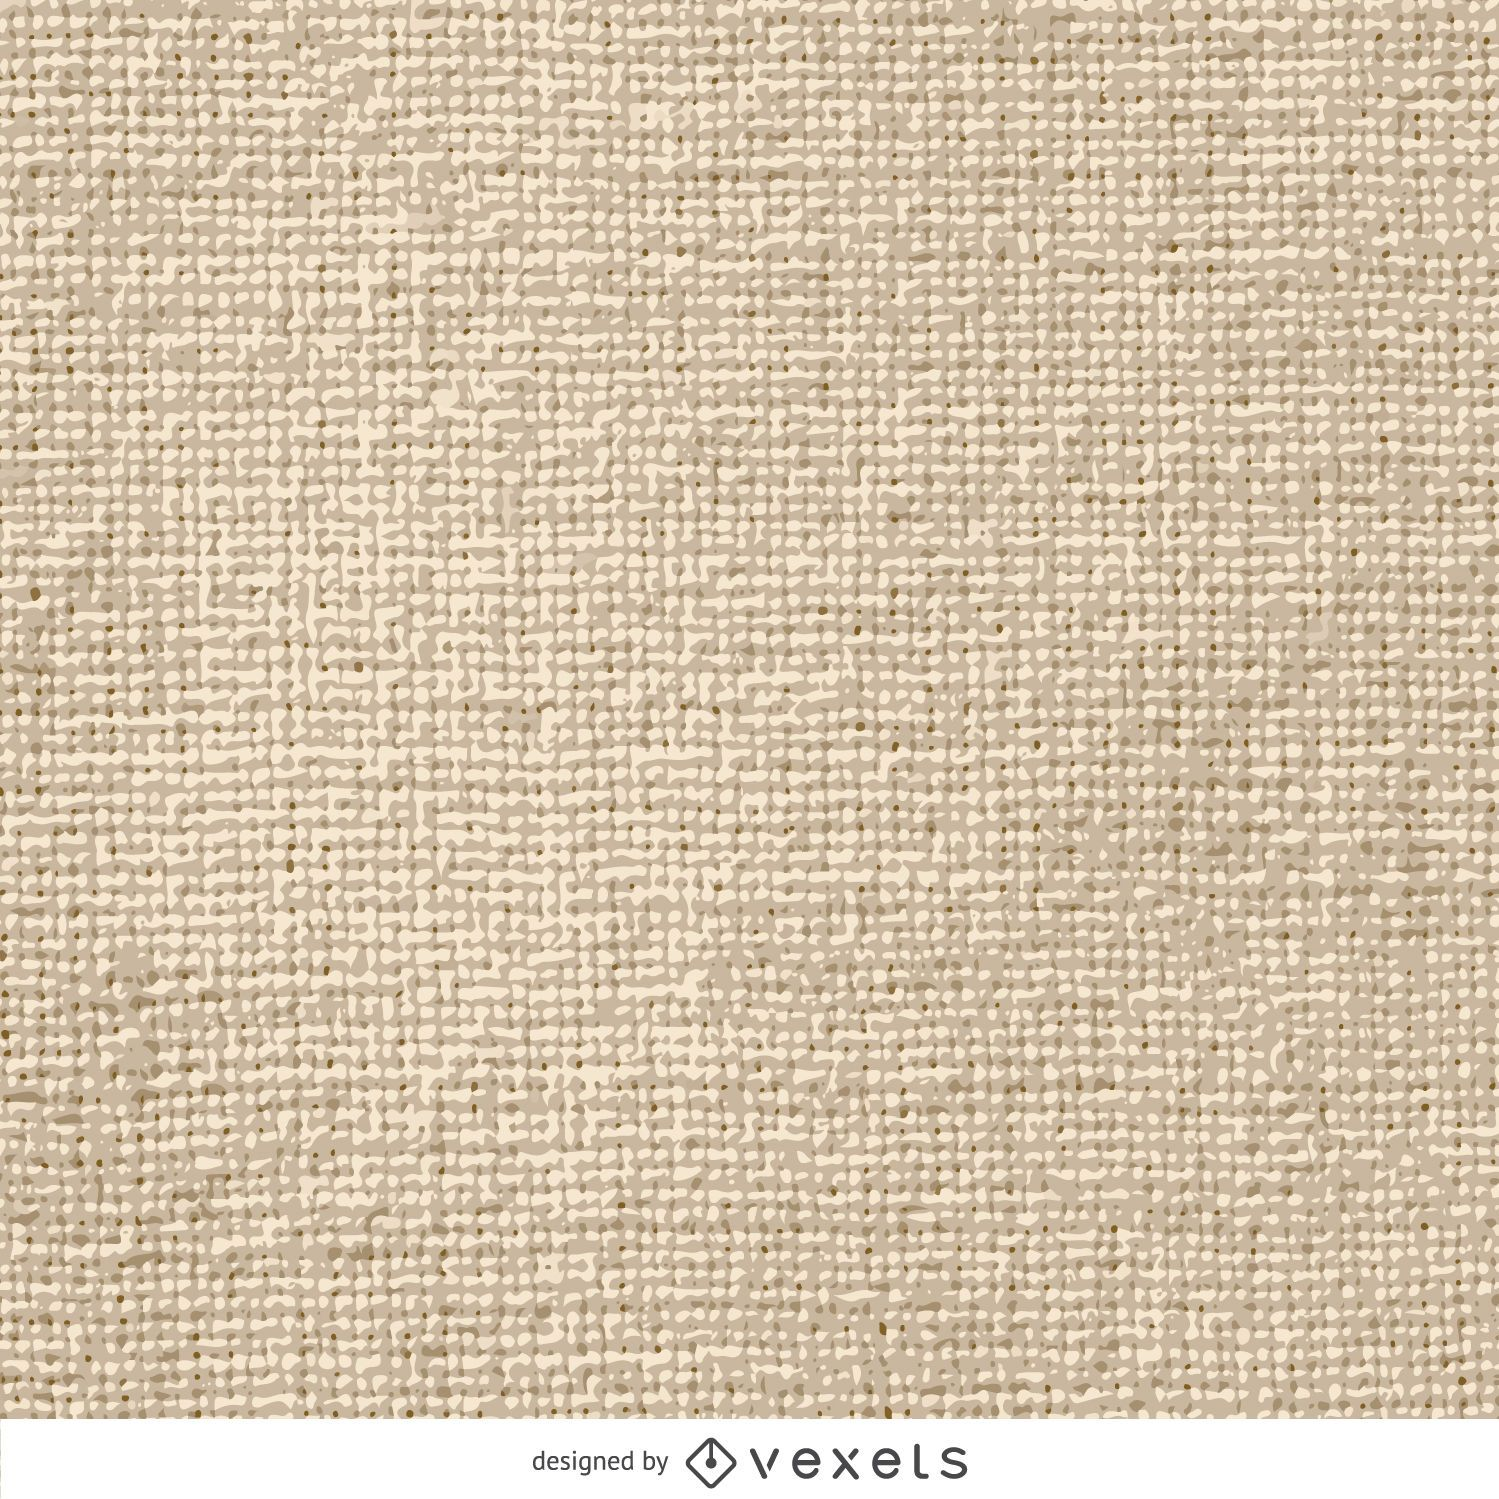 Fabric canvas texture - Vector download